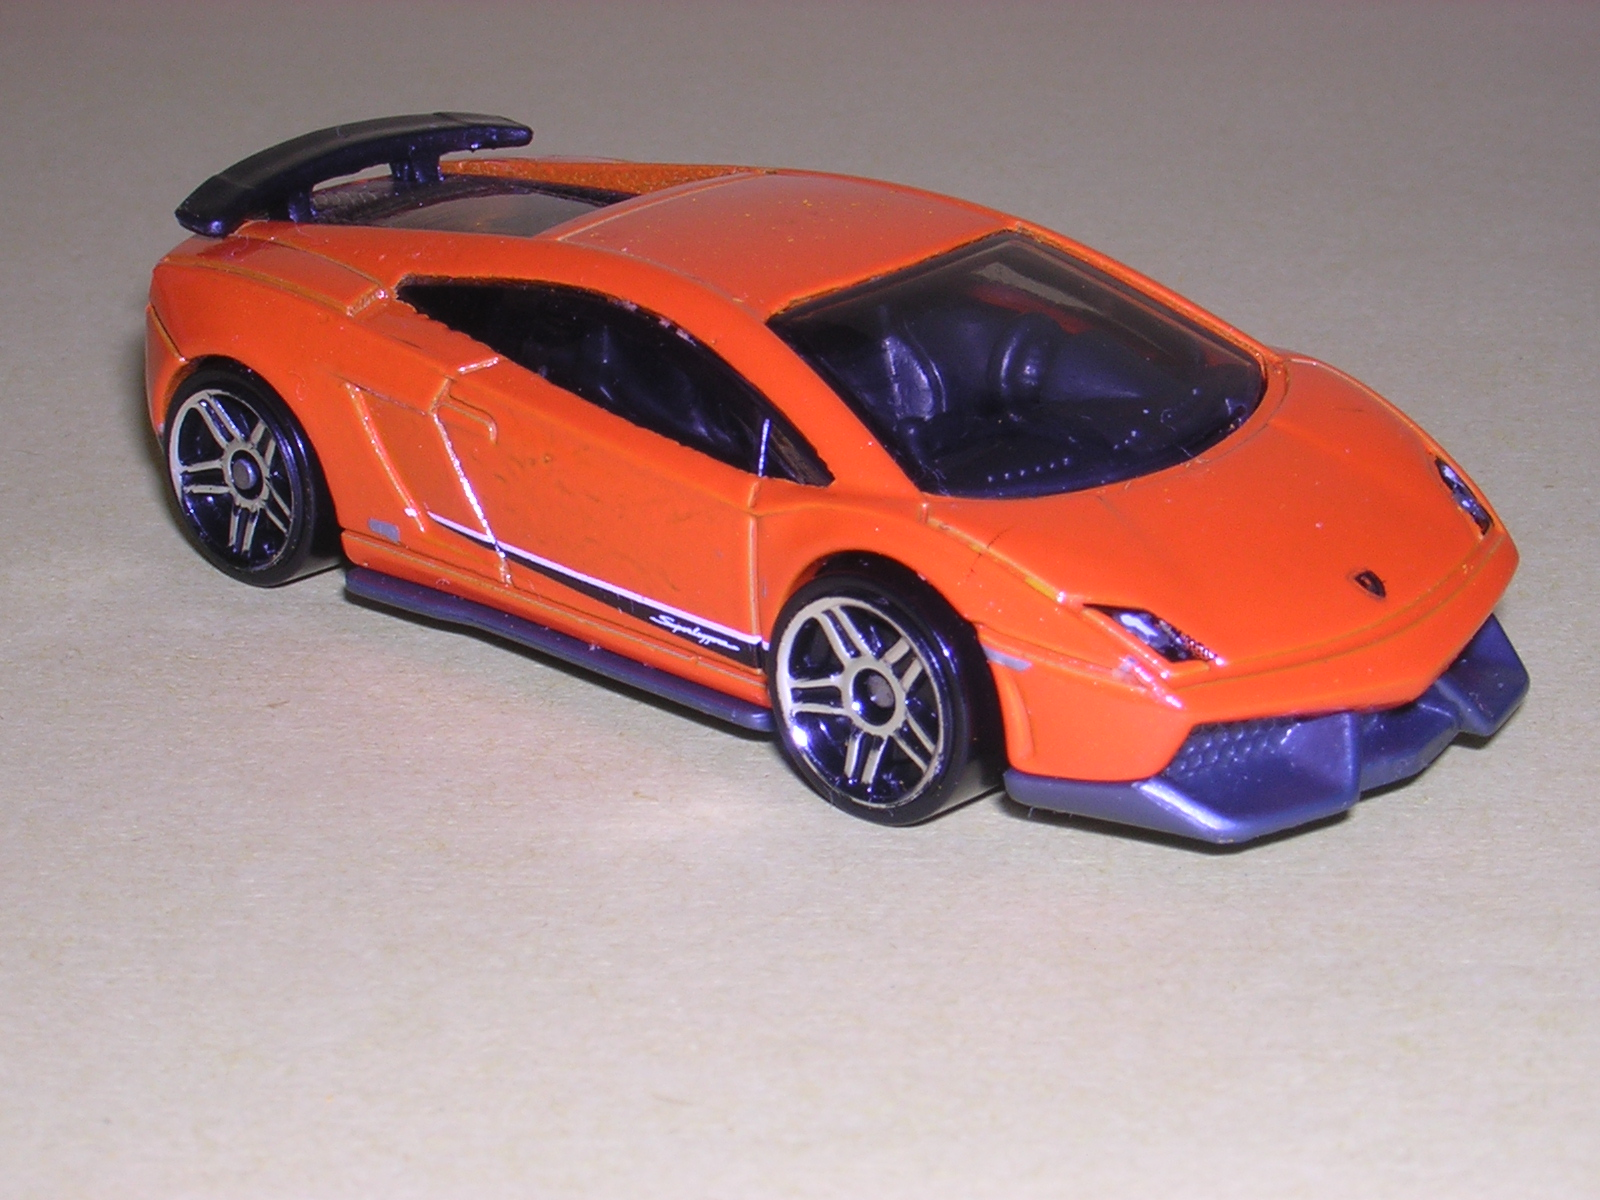 image lamborghini gallardo hot wheels wiki fandom powered by wikia. Black Bedroom Furniture Sets. Home Design Ideas